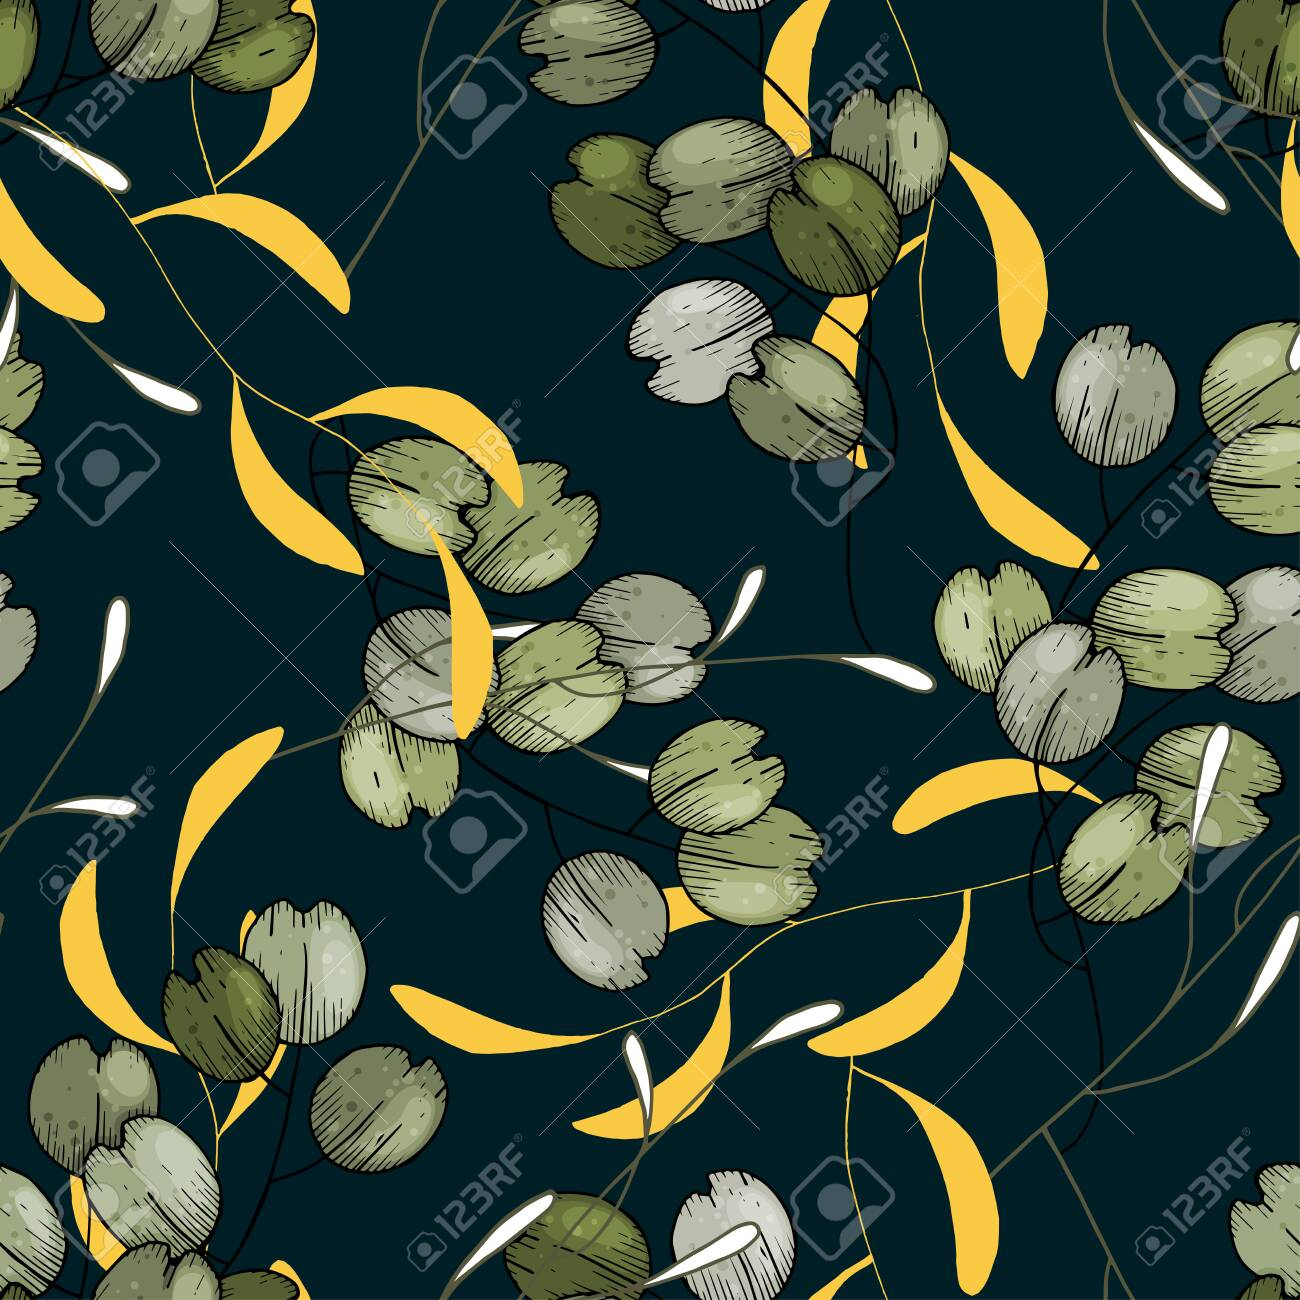 Realistic Tropical Leaves Branches And Foliage Seamless Pattern Royalty Free Cliparts Vectors And Stock Illustration Image 148959122